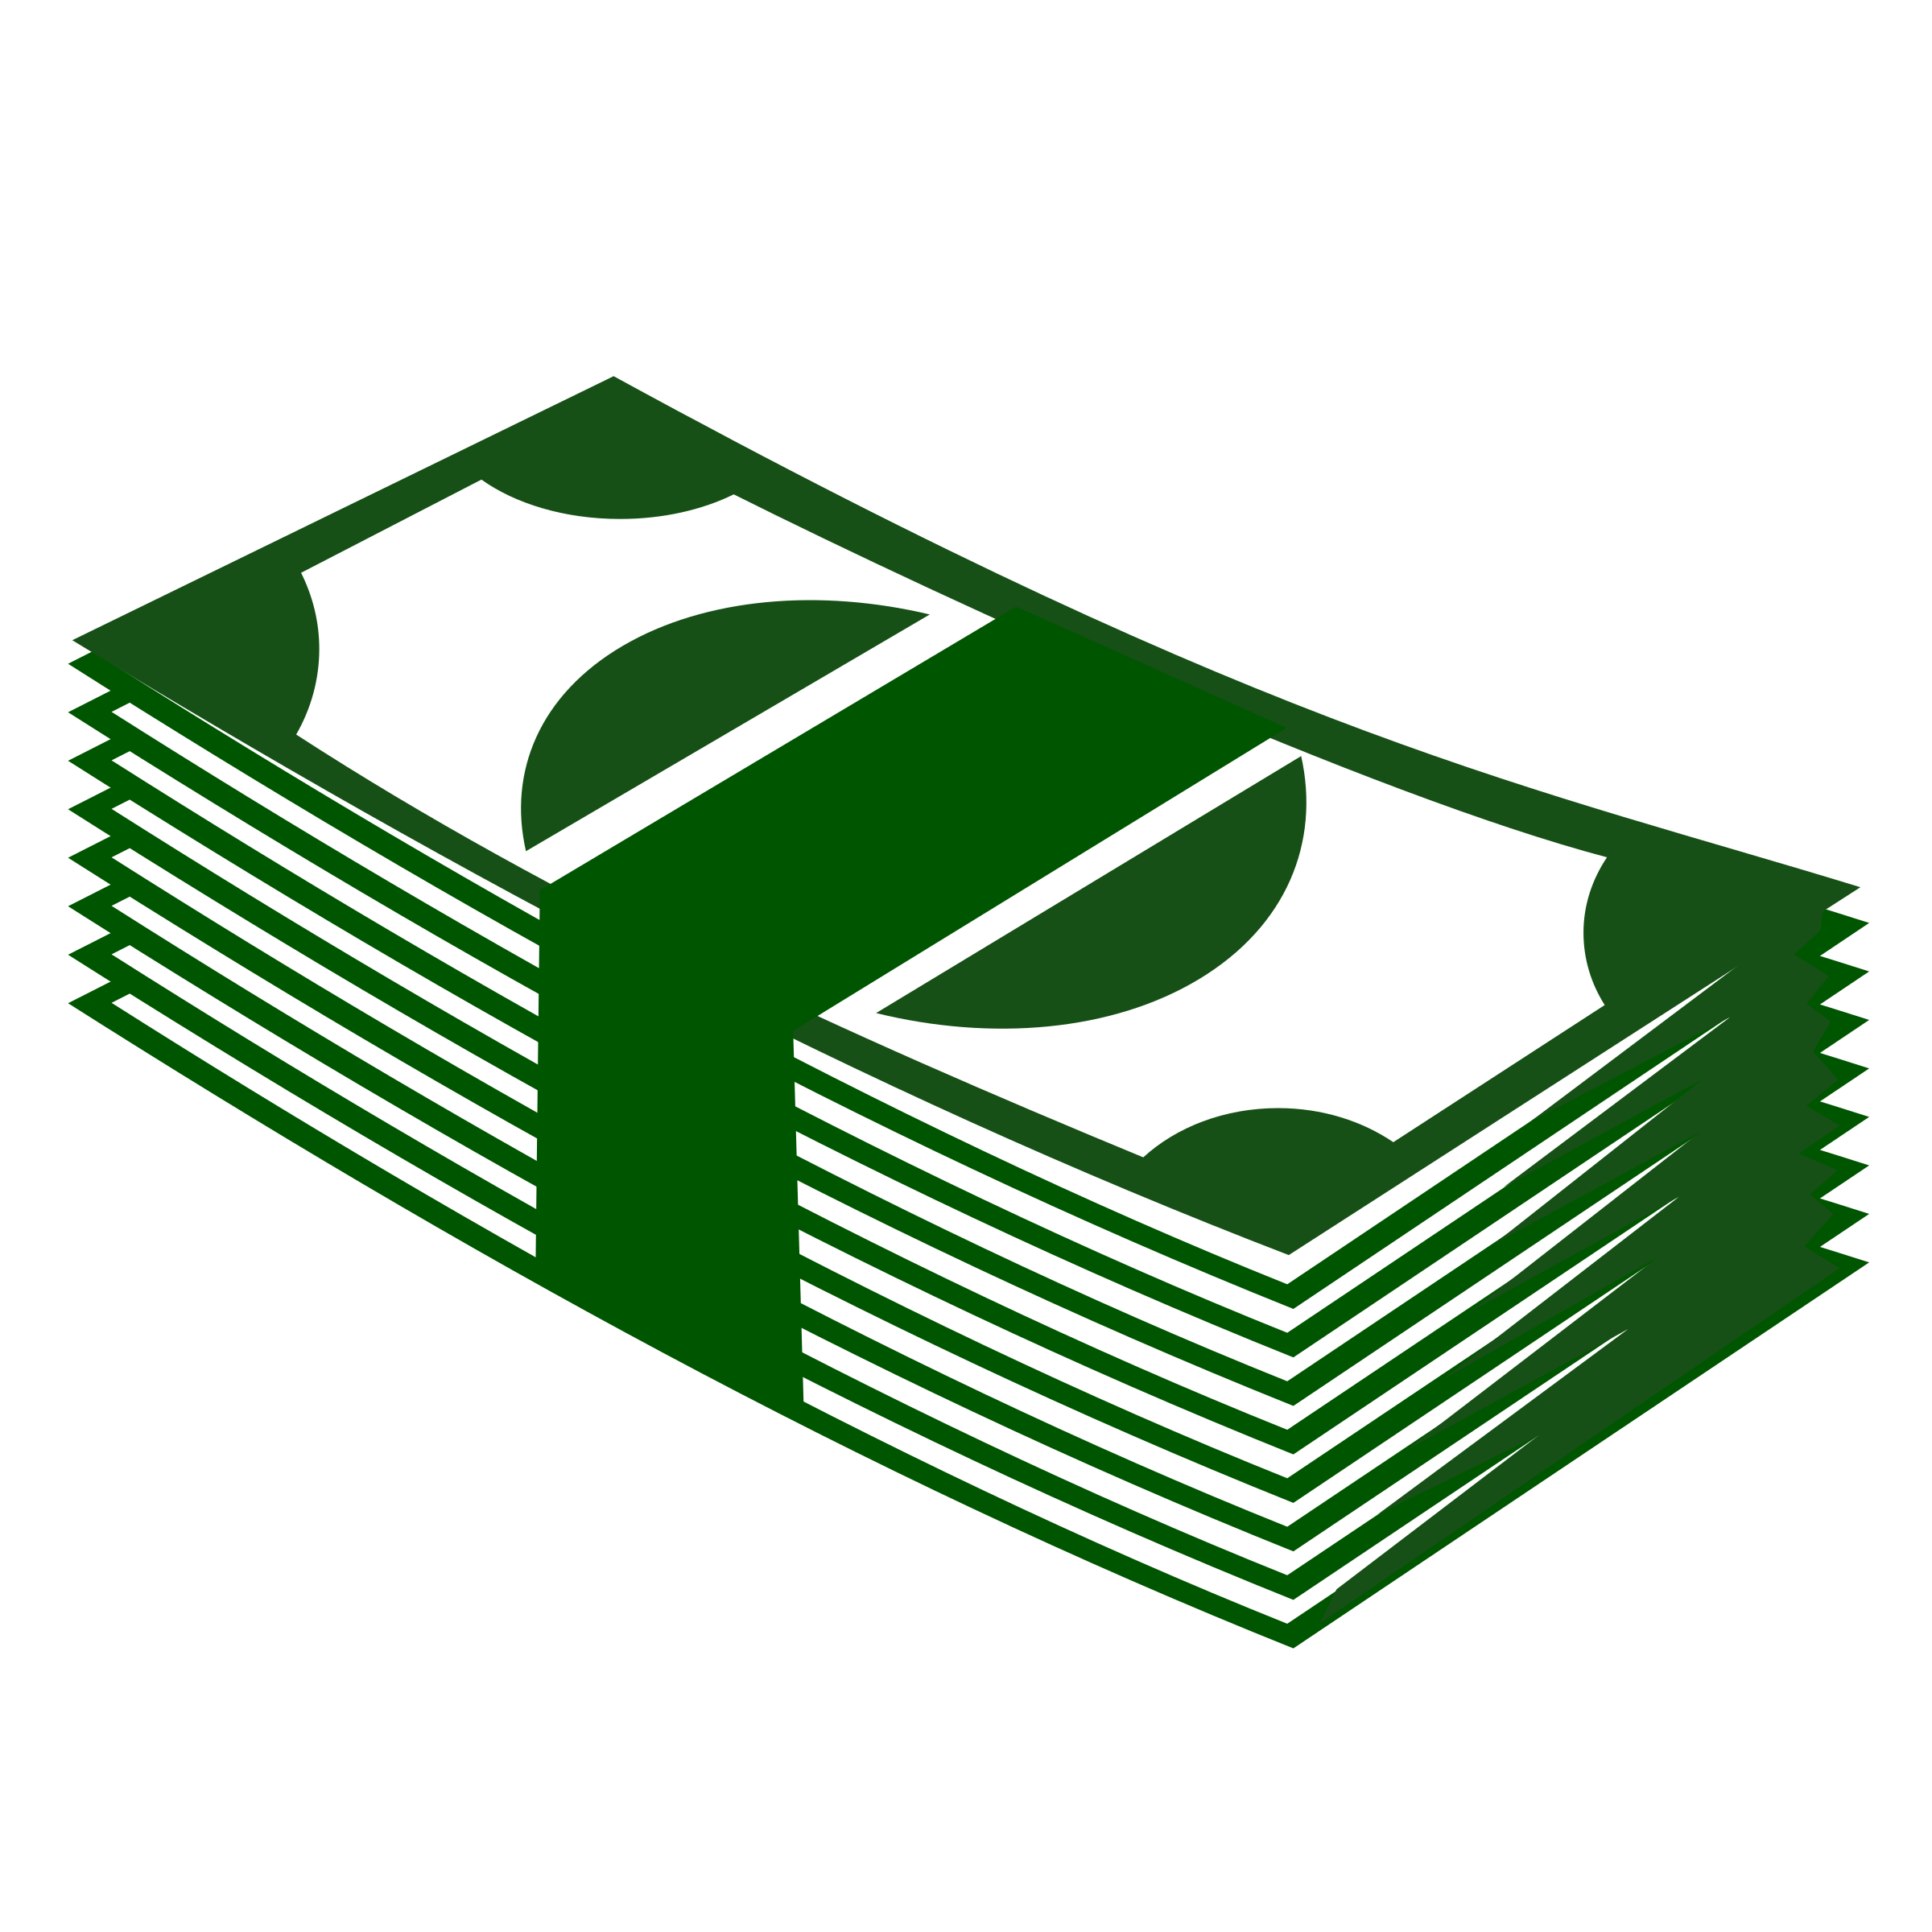 BIG IMAGE (PNG) - Clipart Of Money